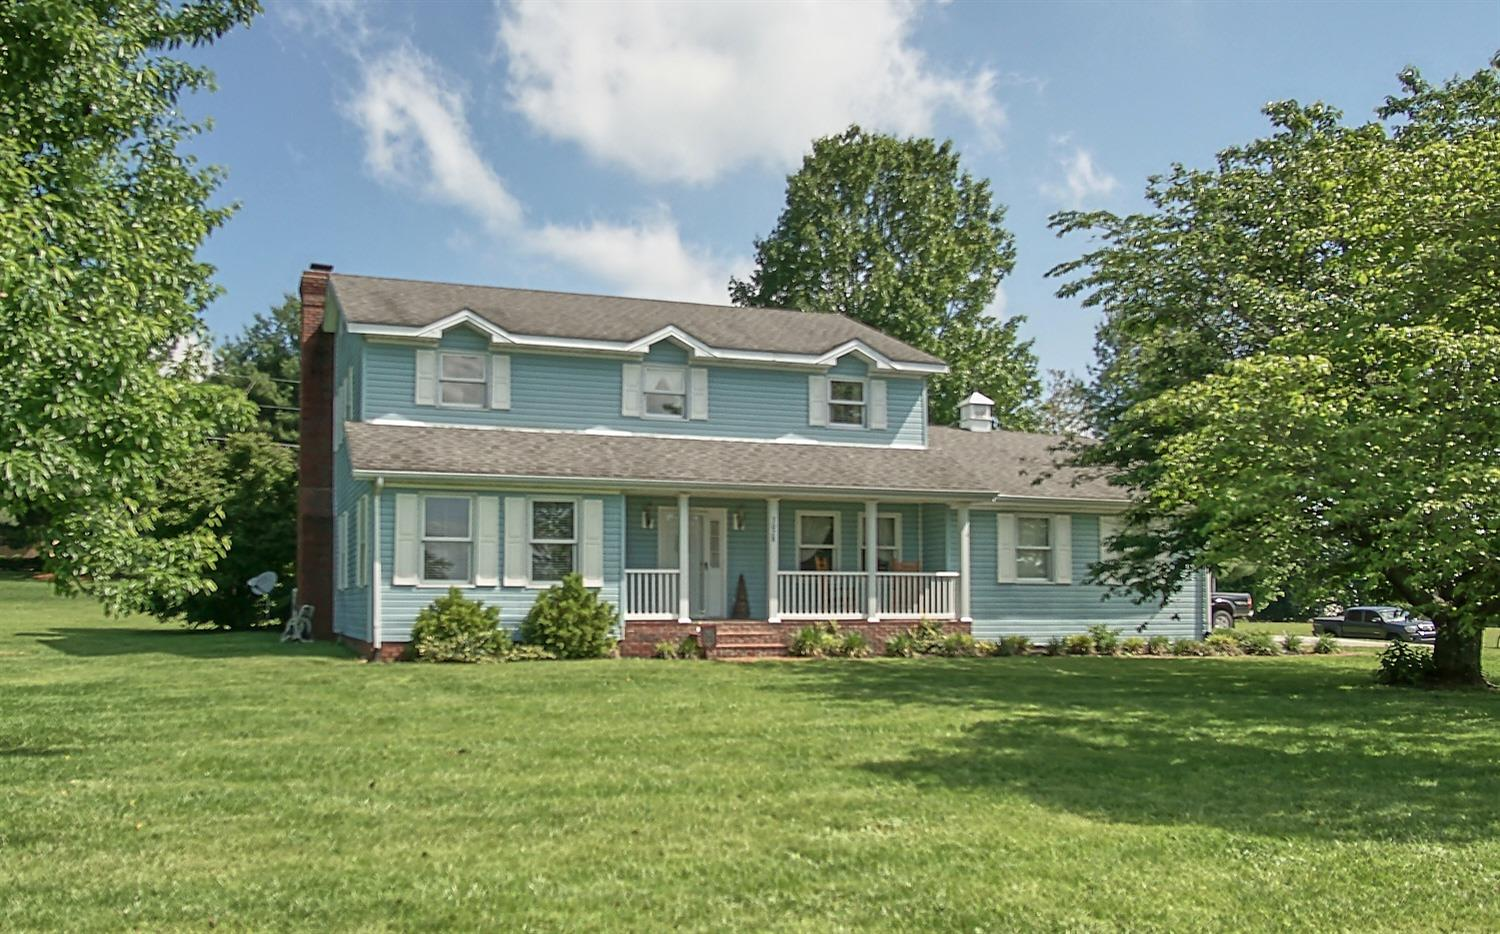 Have%20you%20been%20searching%20for%20the%20perfect%20home%20in%20Eastern%20Boyle%20County?%20This%20beautiful%20two%20story%20home%20has%20a%20great%20layout,%20lots%20of%20space%20and%20sits%20on%20a%20corner%20lot.%20You%20will%20love%20the%20%20location!%20The%20home%20has%20a%20formal%20living%20room,%20formal%20dining%20room%20and%20family%20room%20with%20a%20fireplace%20and%20access%20to%20the%20wonderful%20screened%20in%20back%20porch.%20There%20is%20also%20a%20very%20nice%20front%20porch%20to%20enjoy.%20The%20lot%20is%20park%20like%20with%20mature%20trees.%20This%20home%20has%20so%20much%20to%20offer!%20Call%20today%20for%20more%20details%20and%20to%20schedule%20your%20showing!%20Don't%20miss%20your%20opportunity%20to%20own%20a%20great%20home%20in%20the%20perfect%20location!